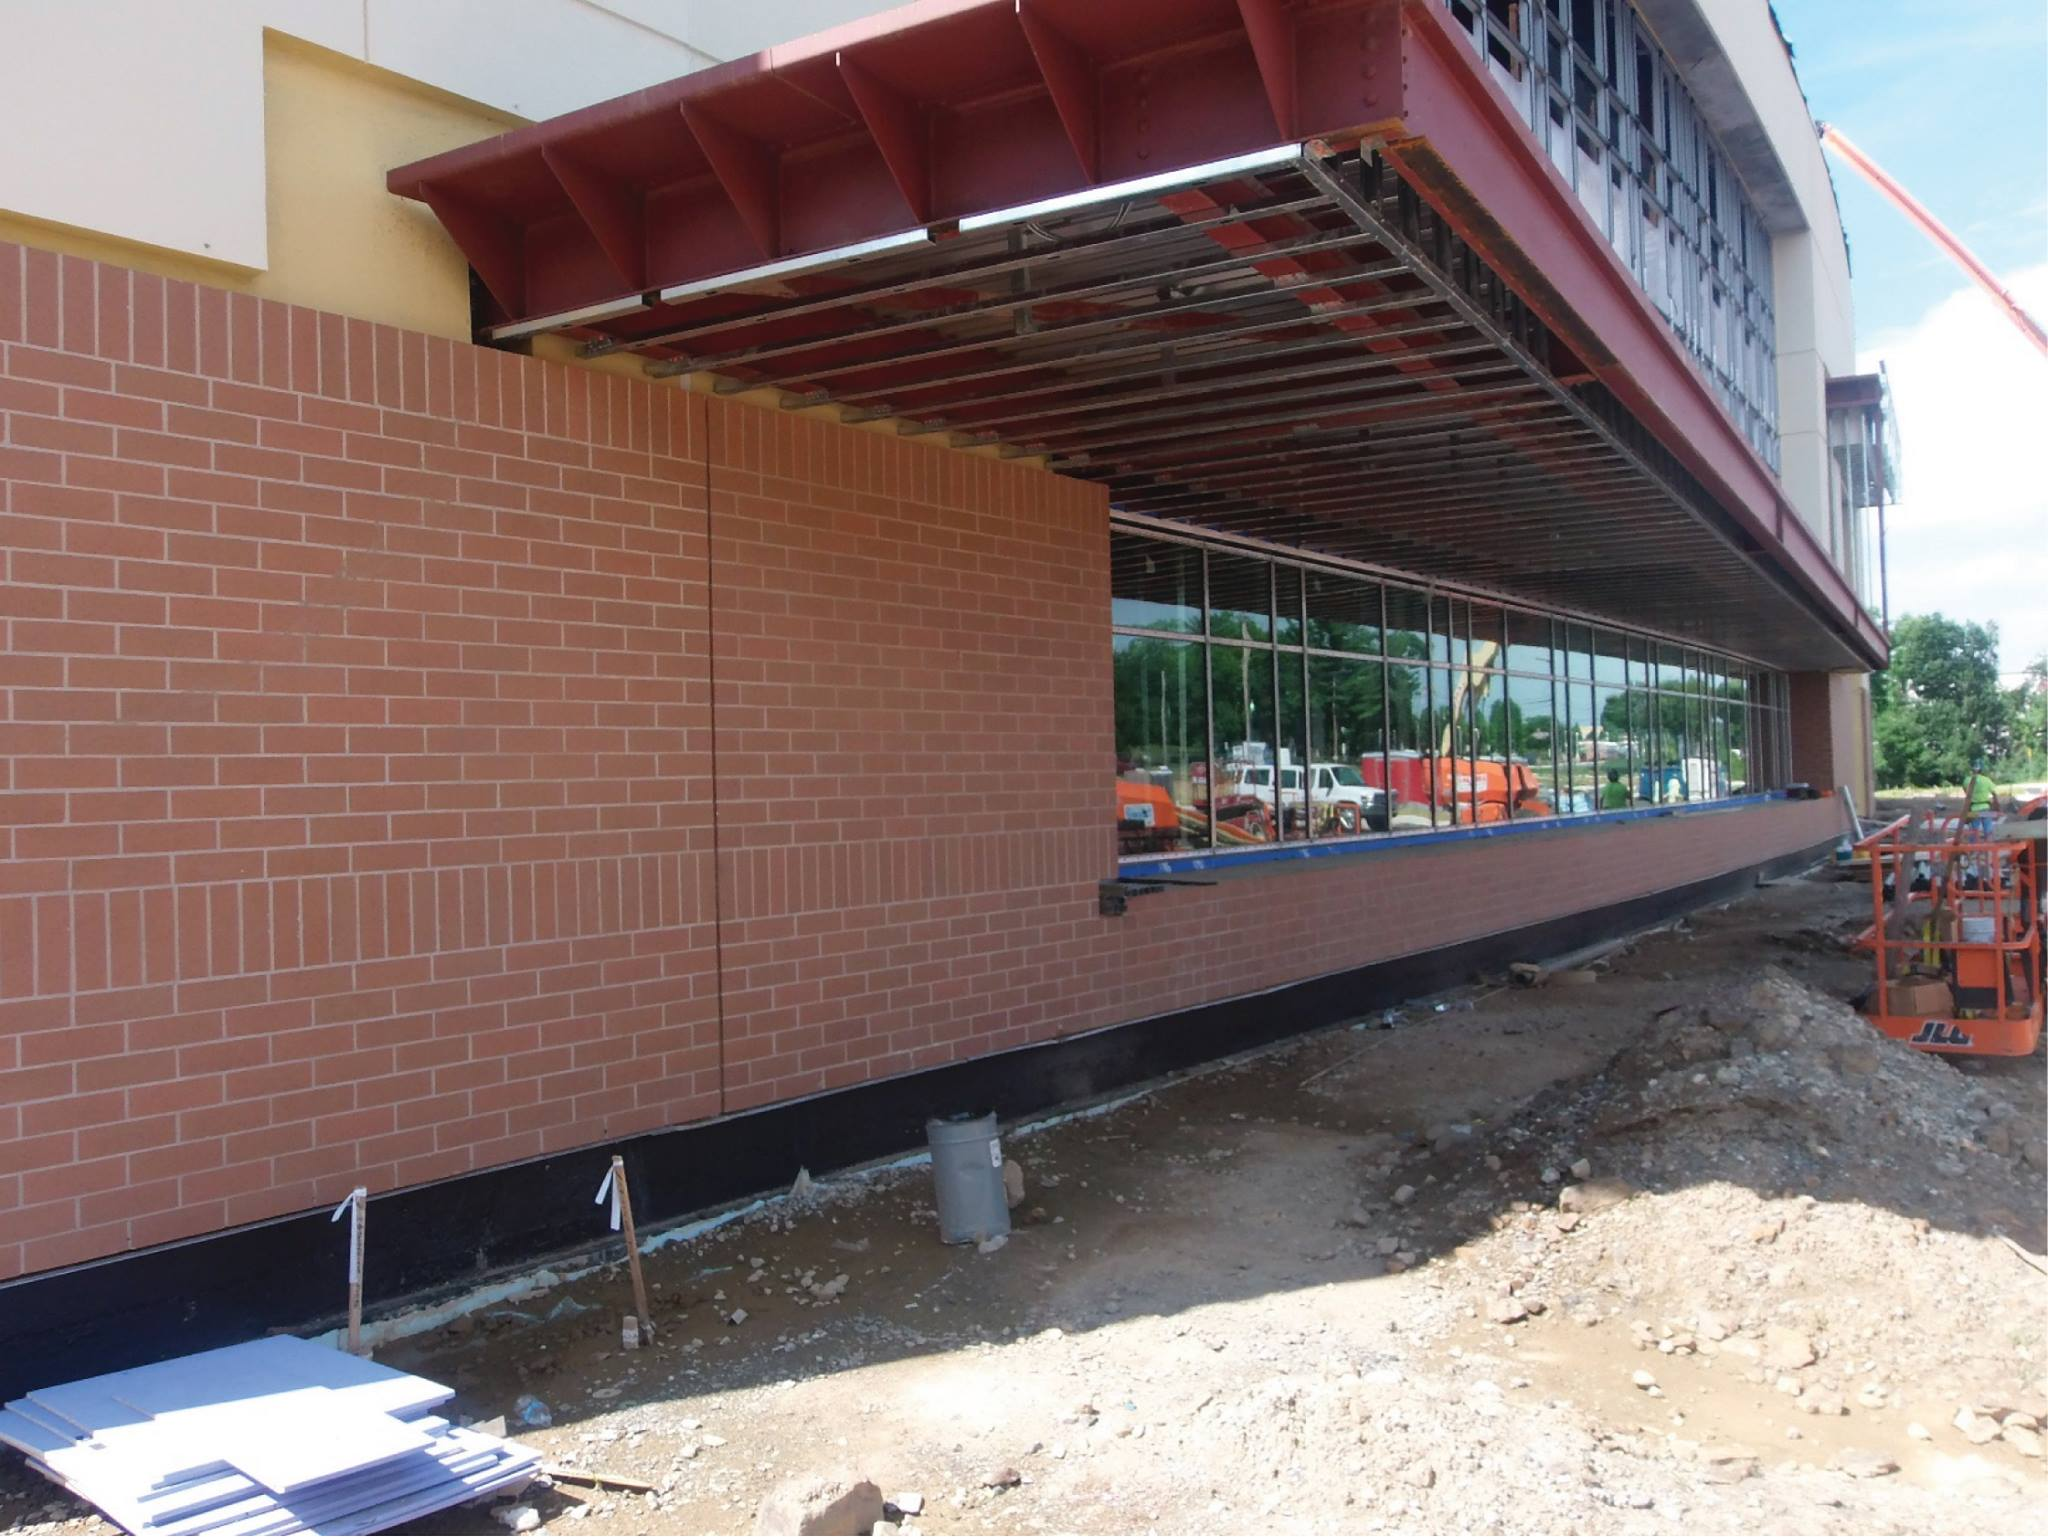 Construction Update (July 15, 2016)